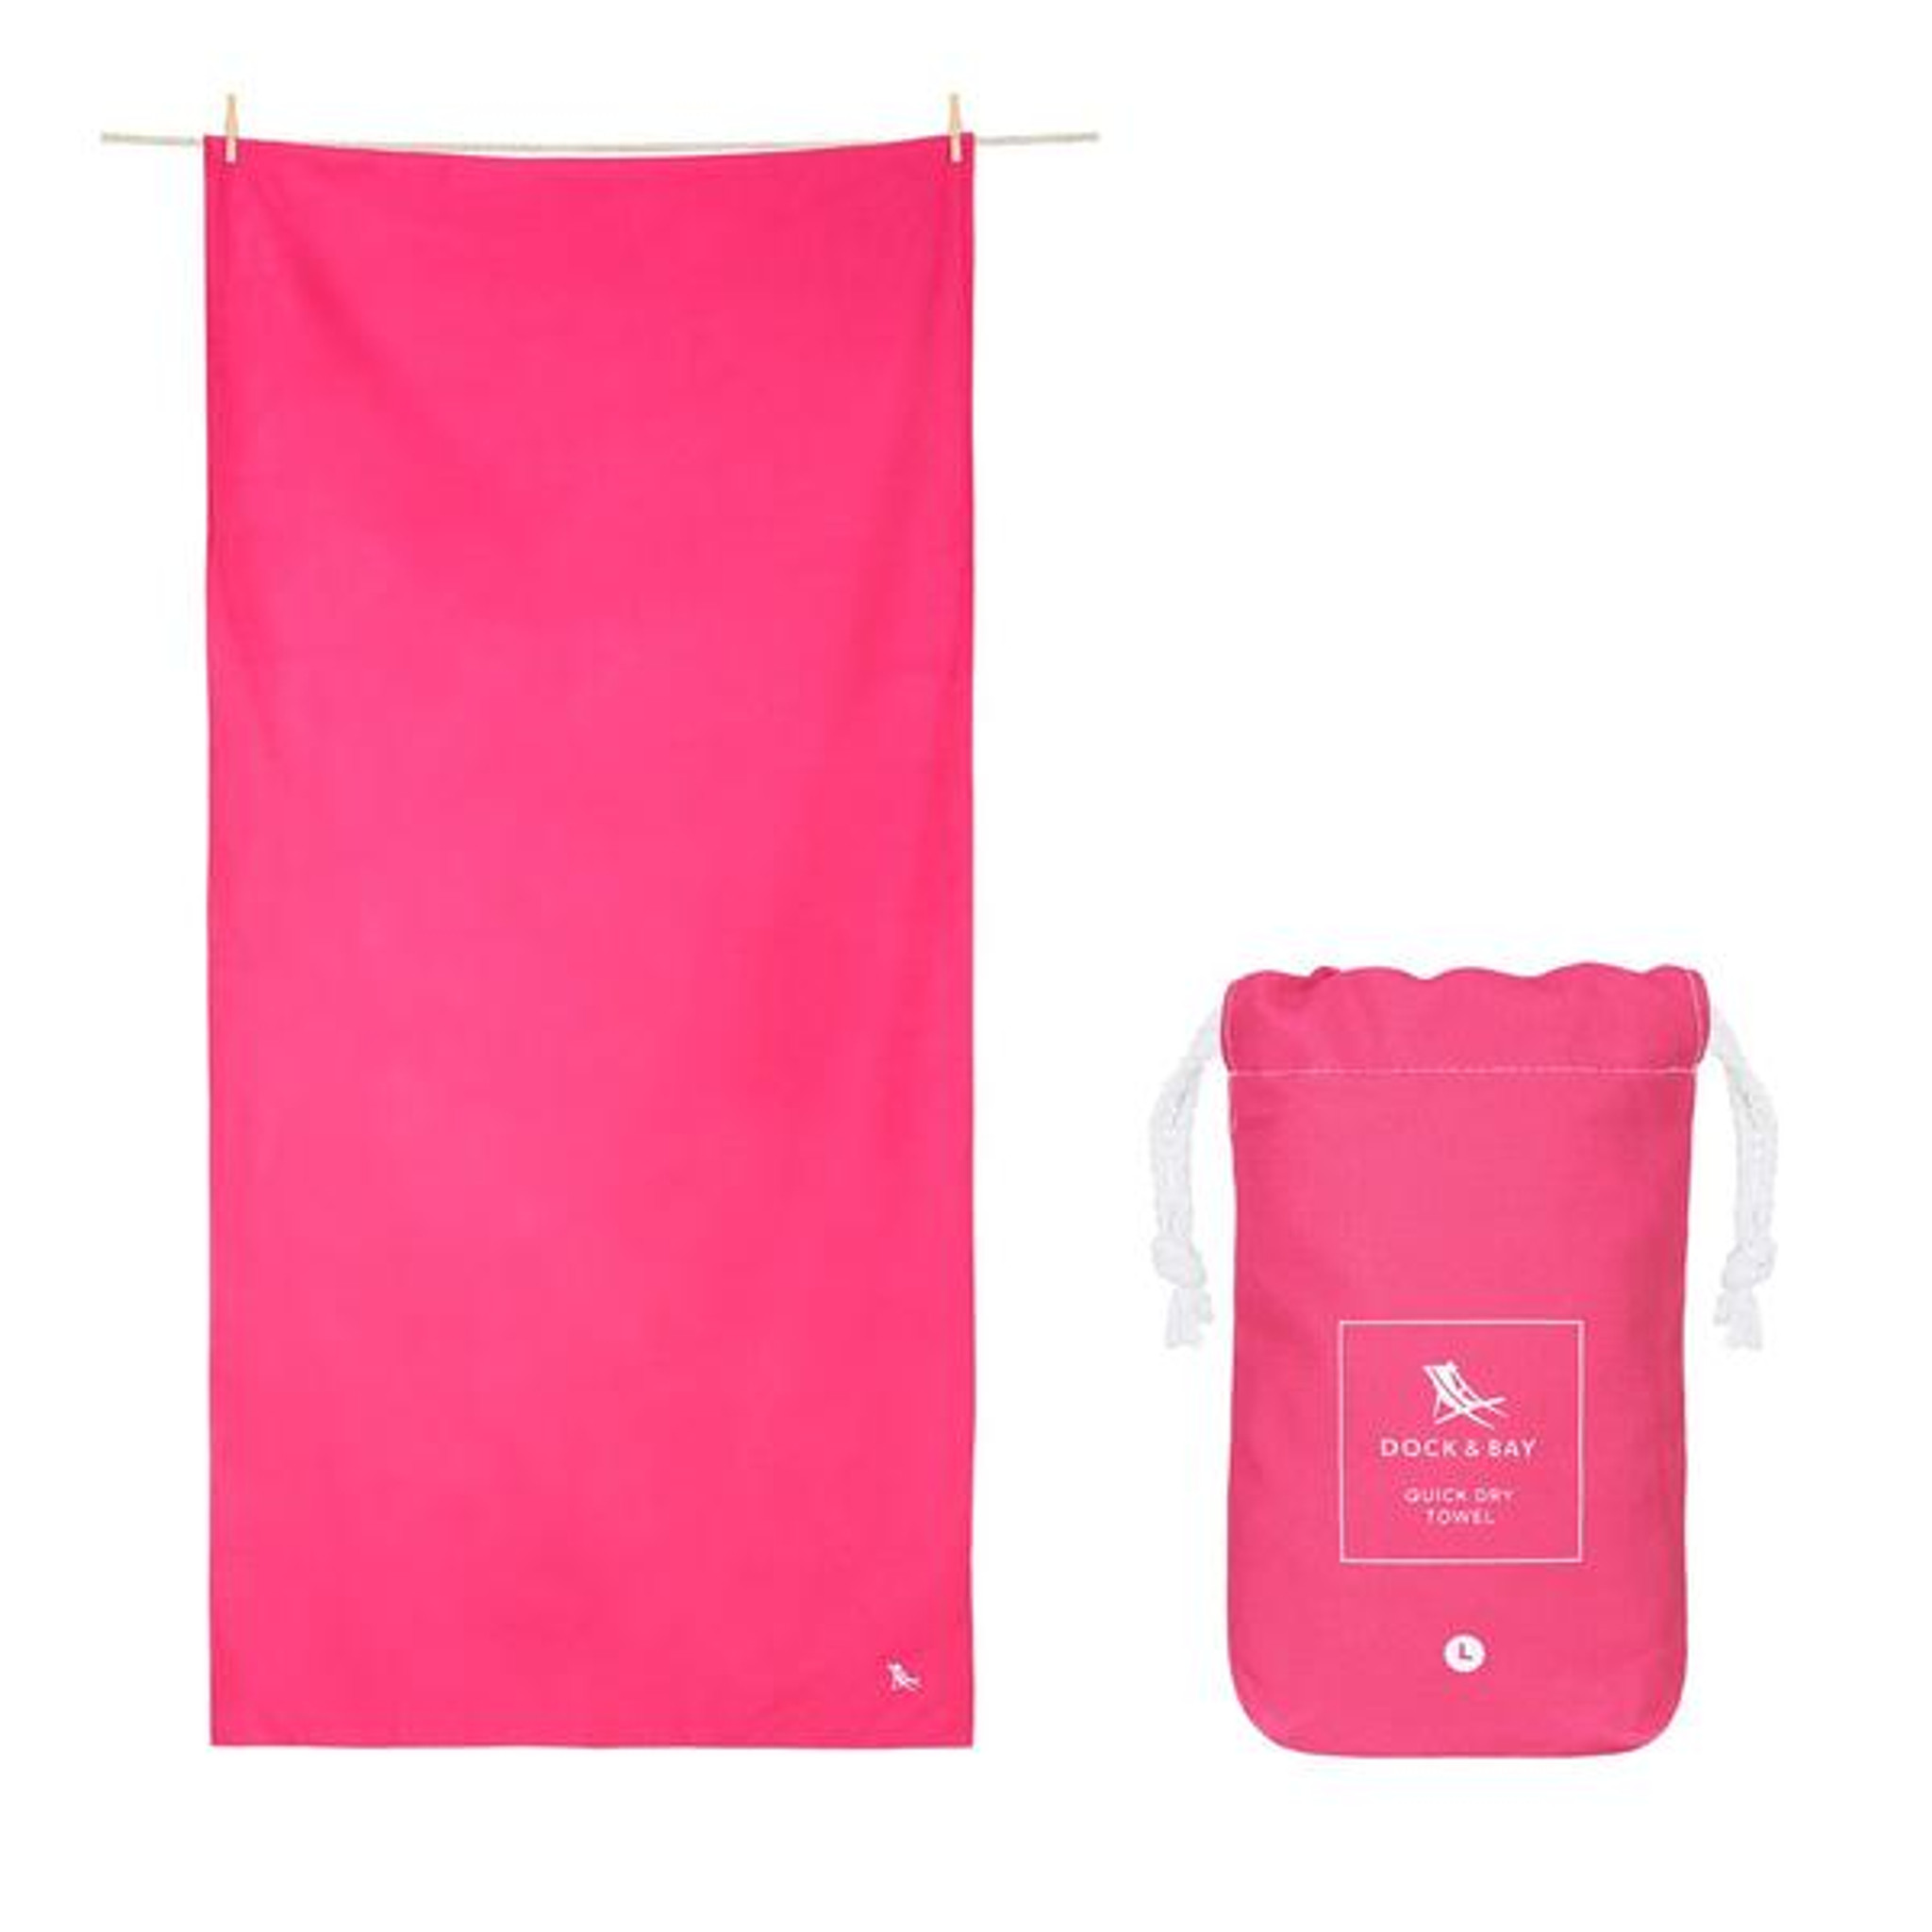 Dock & Bay Quick-Dry Large Towel - Angel Pink